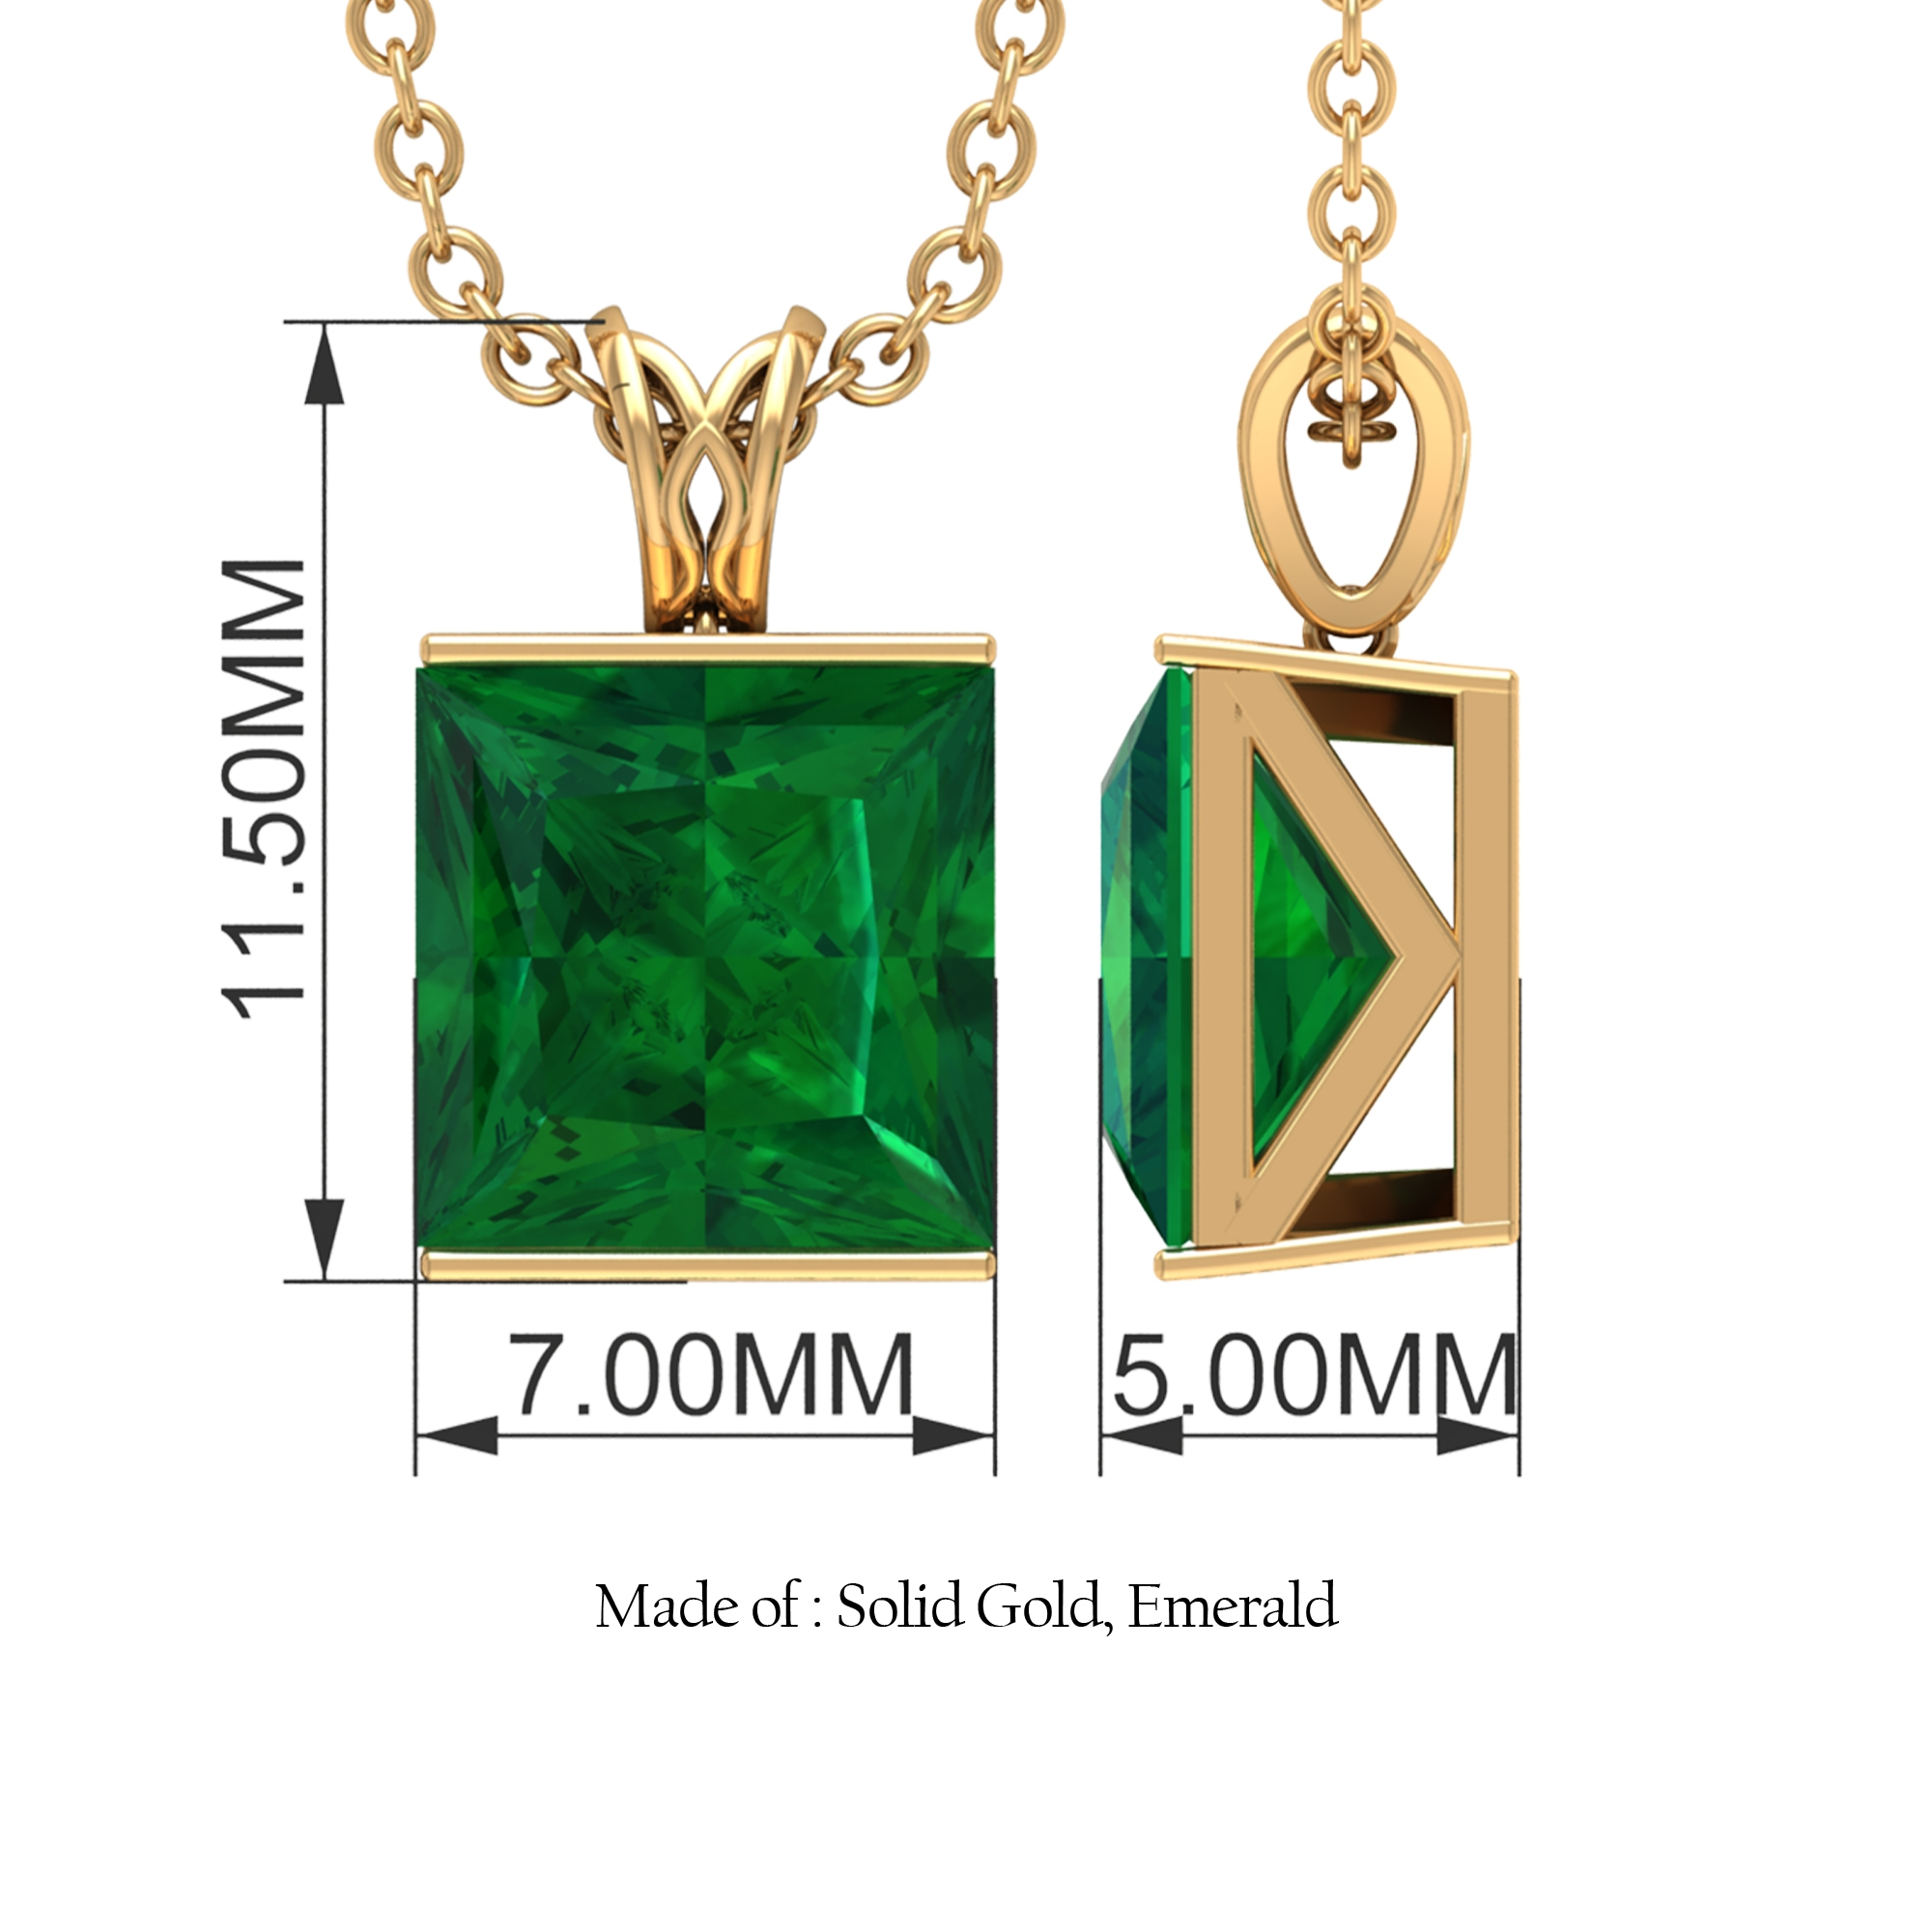 7 MM Princess Cut Emerald Solitaire Pendant in Bar Setting with Decorative Bail